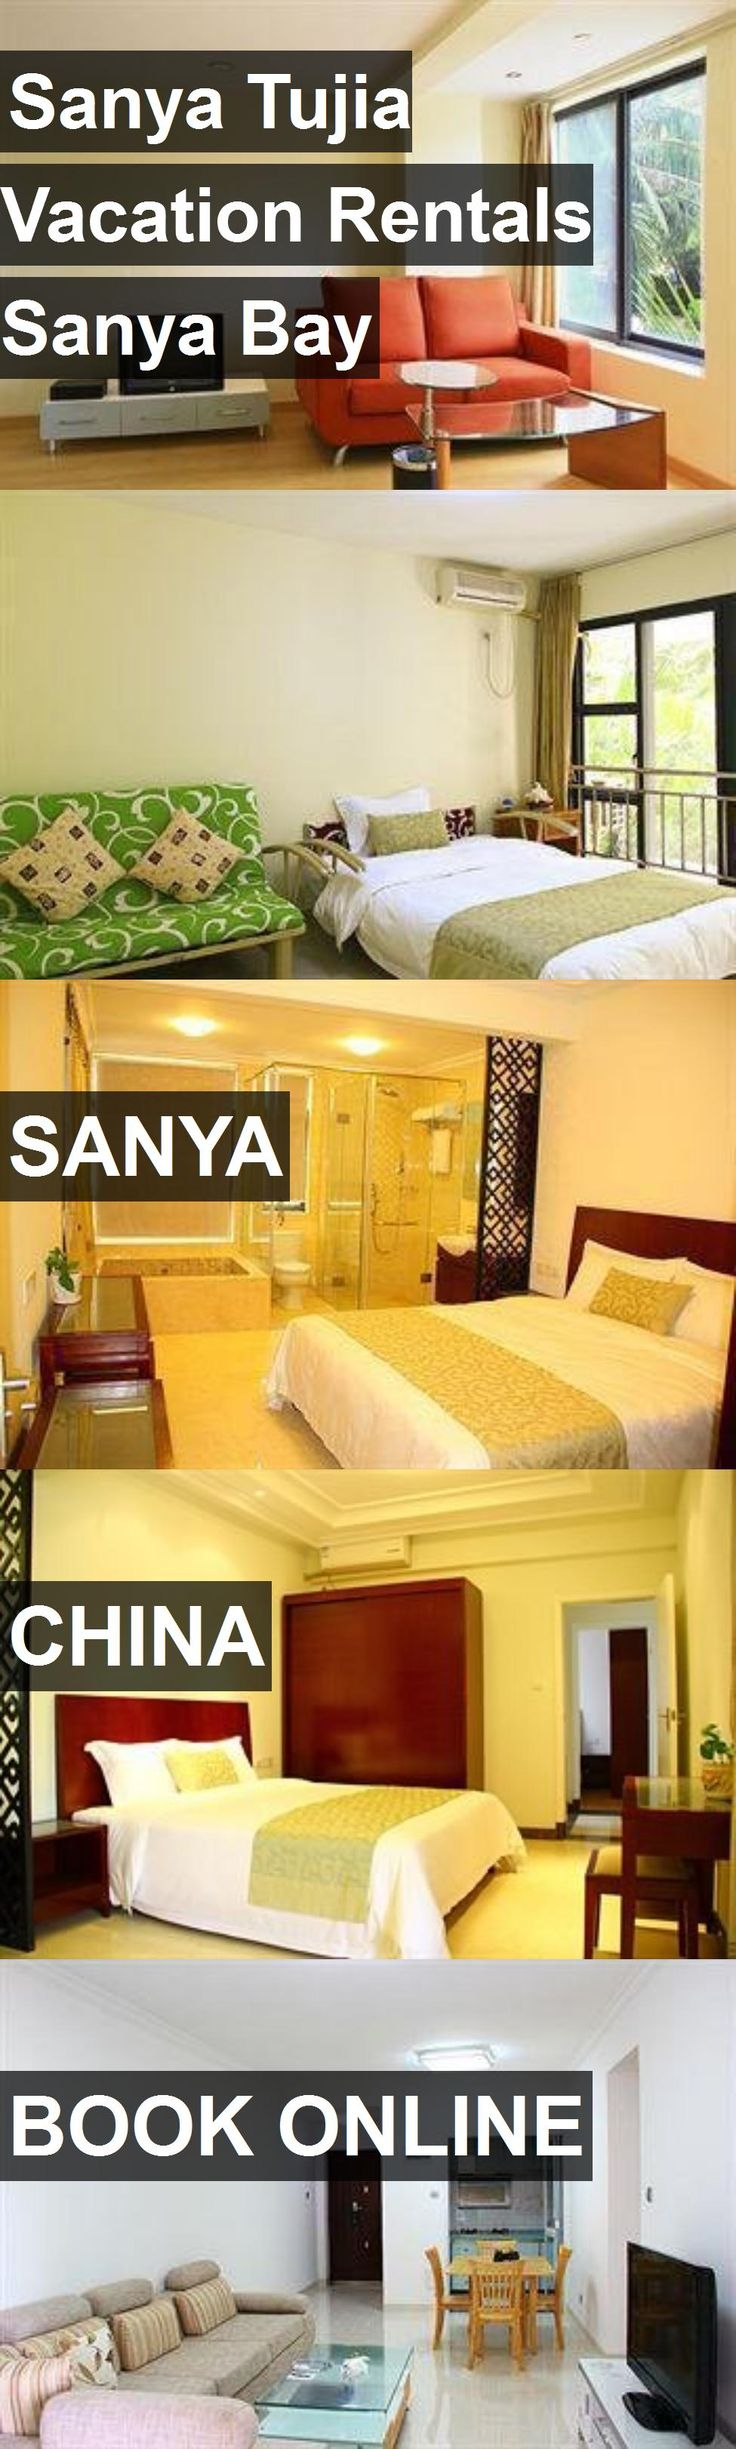 Hotel Sanya Tujia Vacation Rentals Sanya Bay in Sanya, China. For more information, photos, reviews and best prices please follow the link. #China #Sanya #travel #vacation #hotel